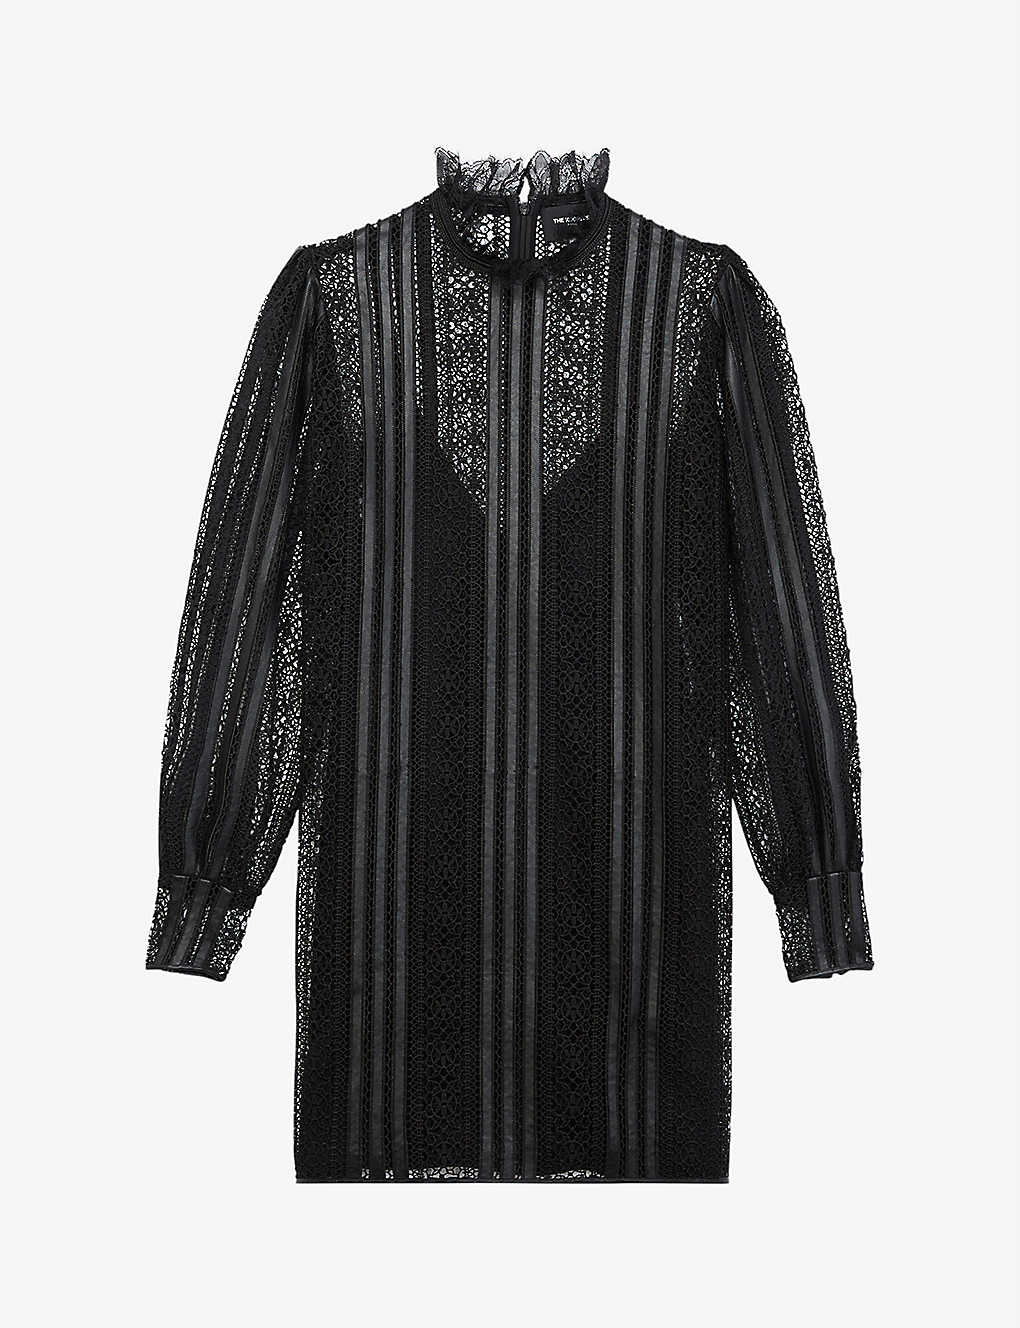 THE KOOPLES Lace And Leather Mini Dress